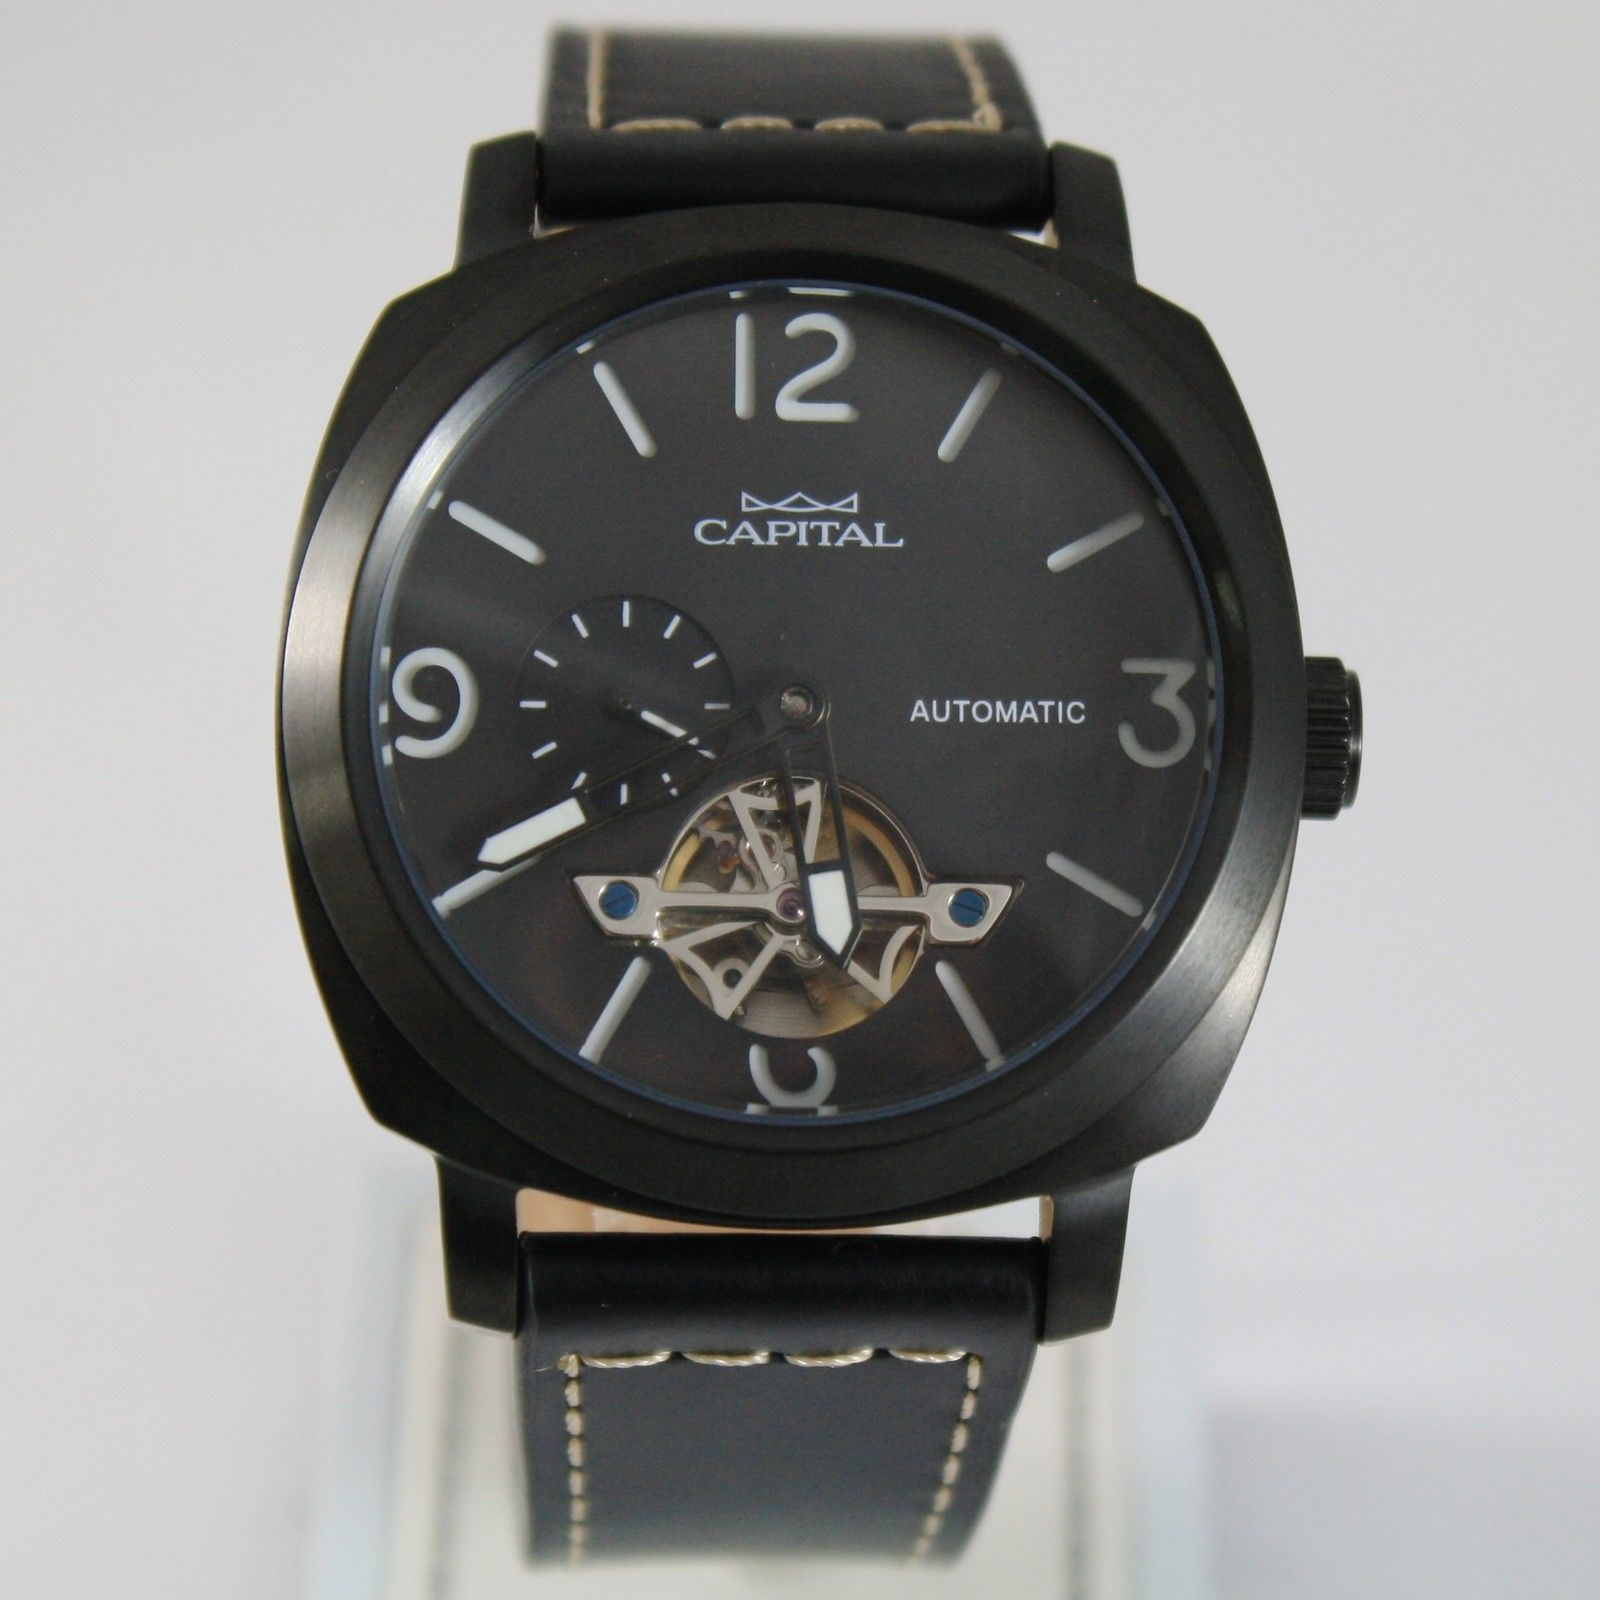 CAPITAL WATCH AUTOMATIC TY2501 MOVEMENT 43 MM BLACK CASE LEATHER BAND